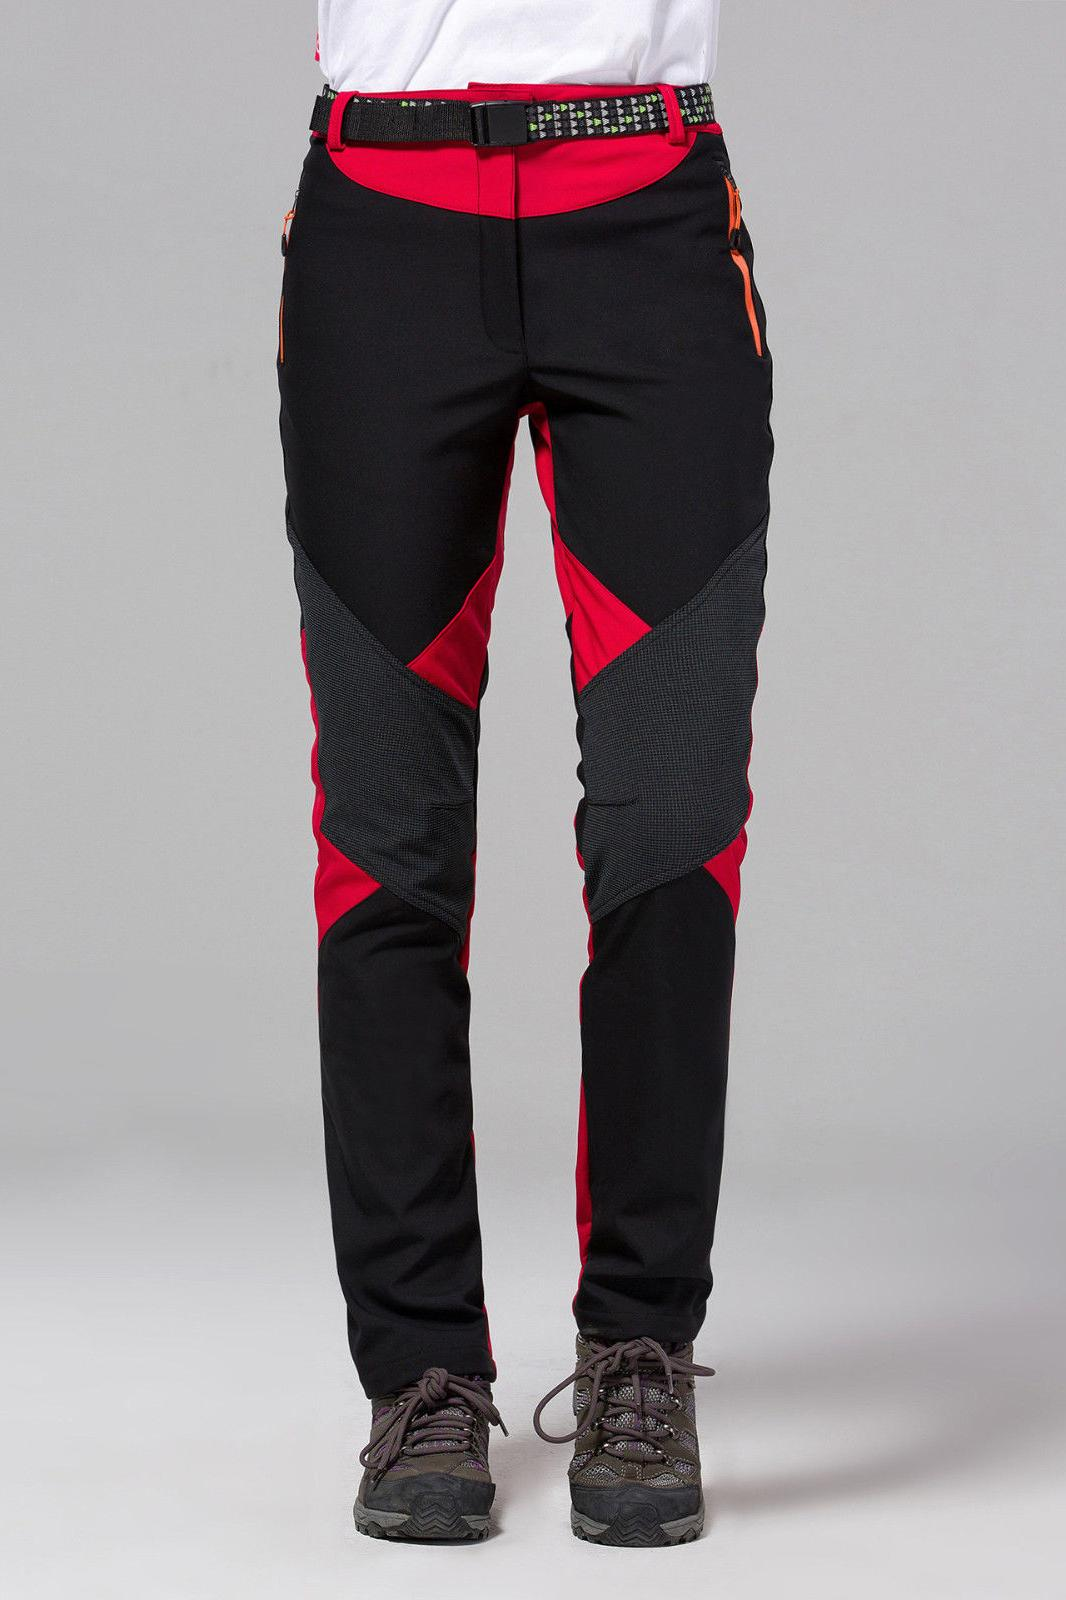 Outdoor Lined Hiking Pants